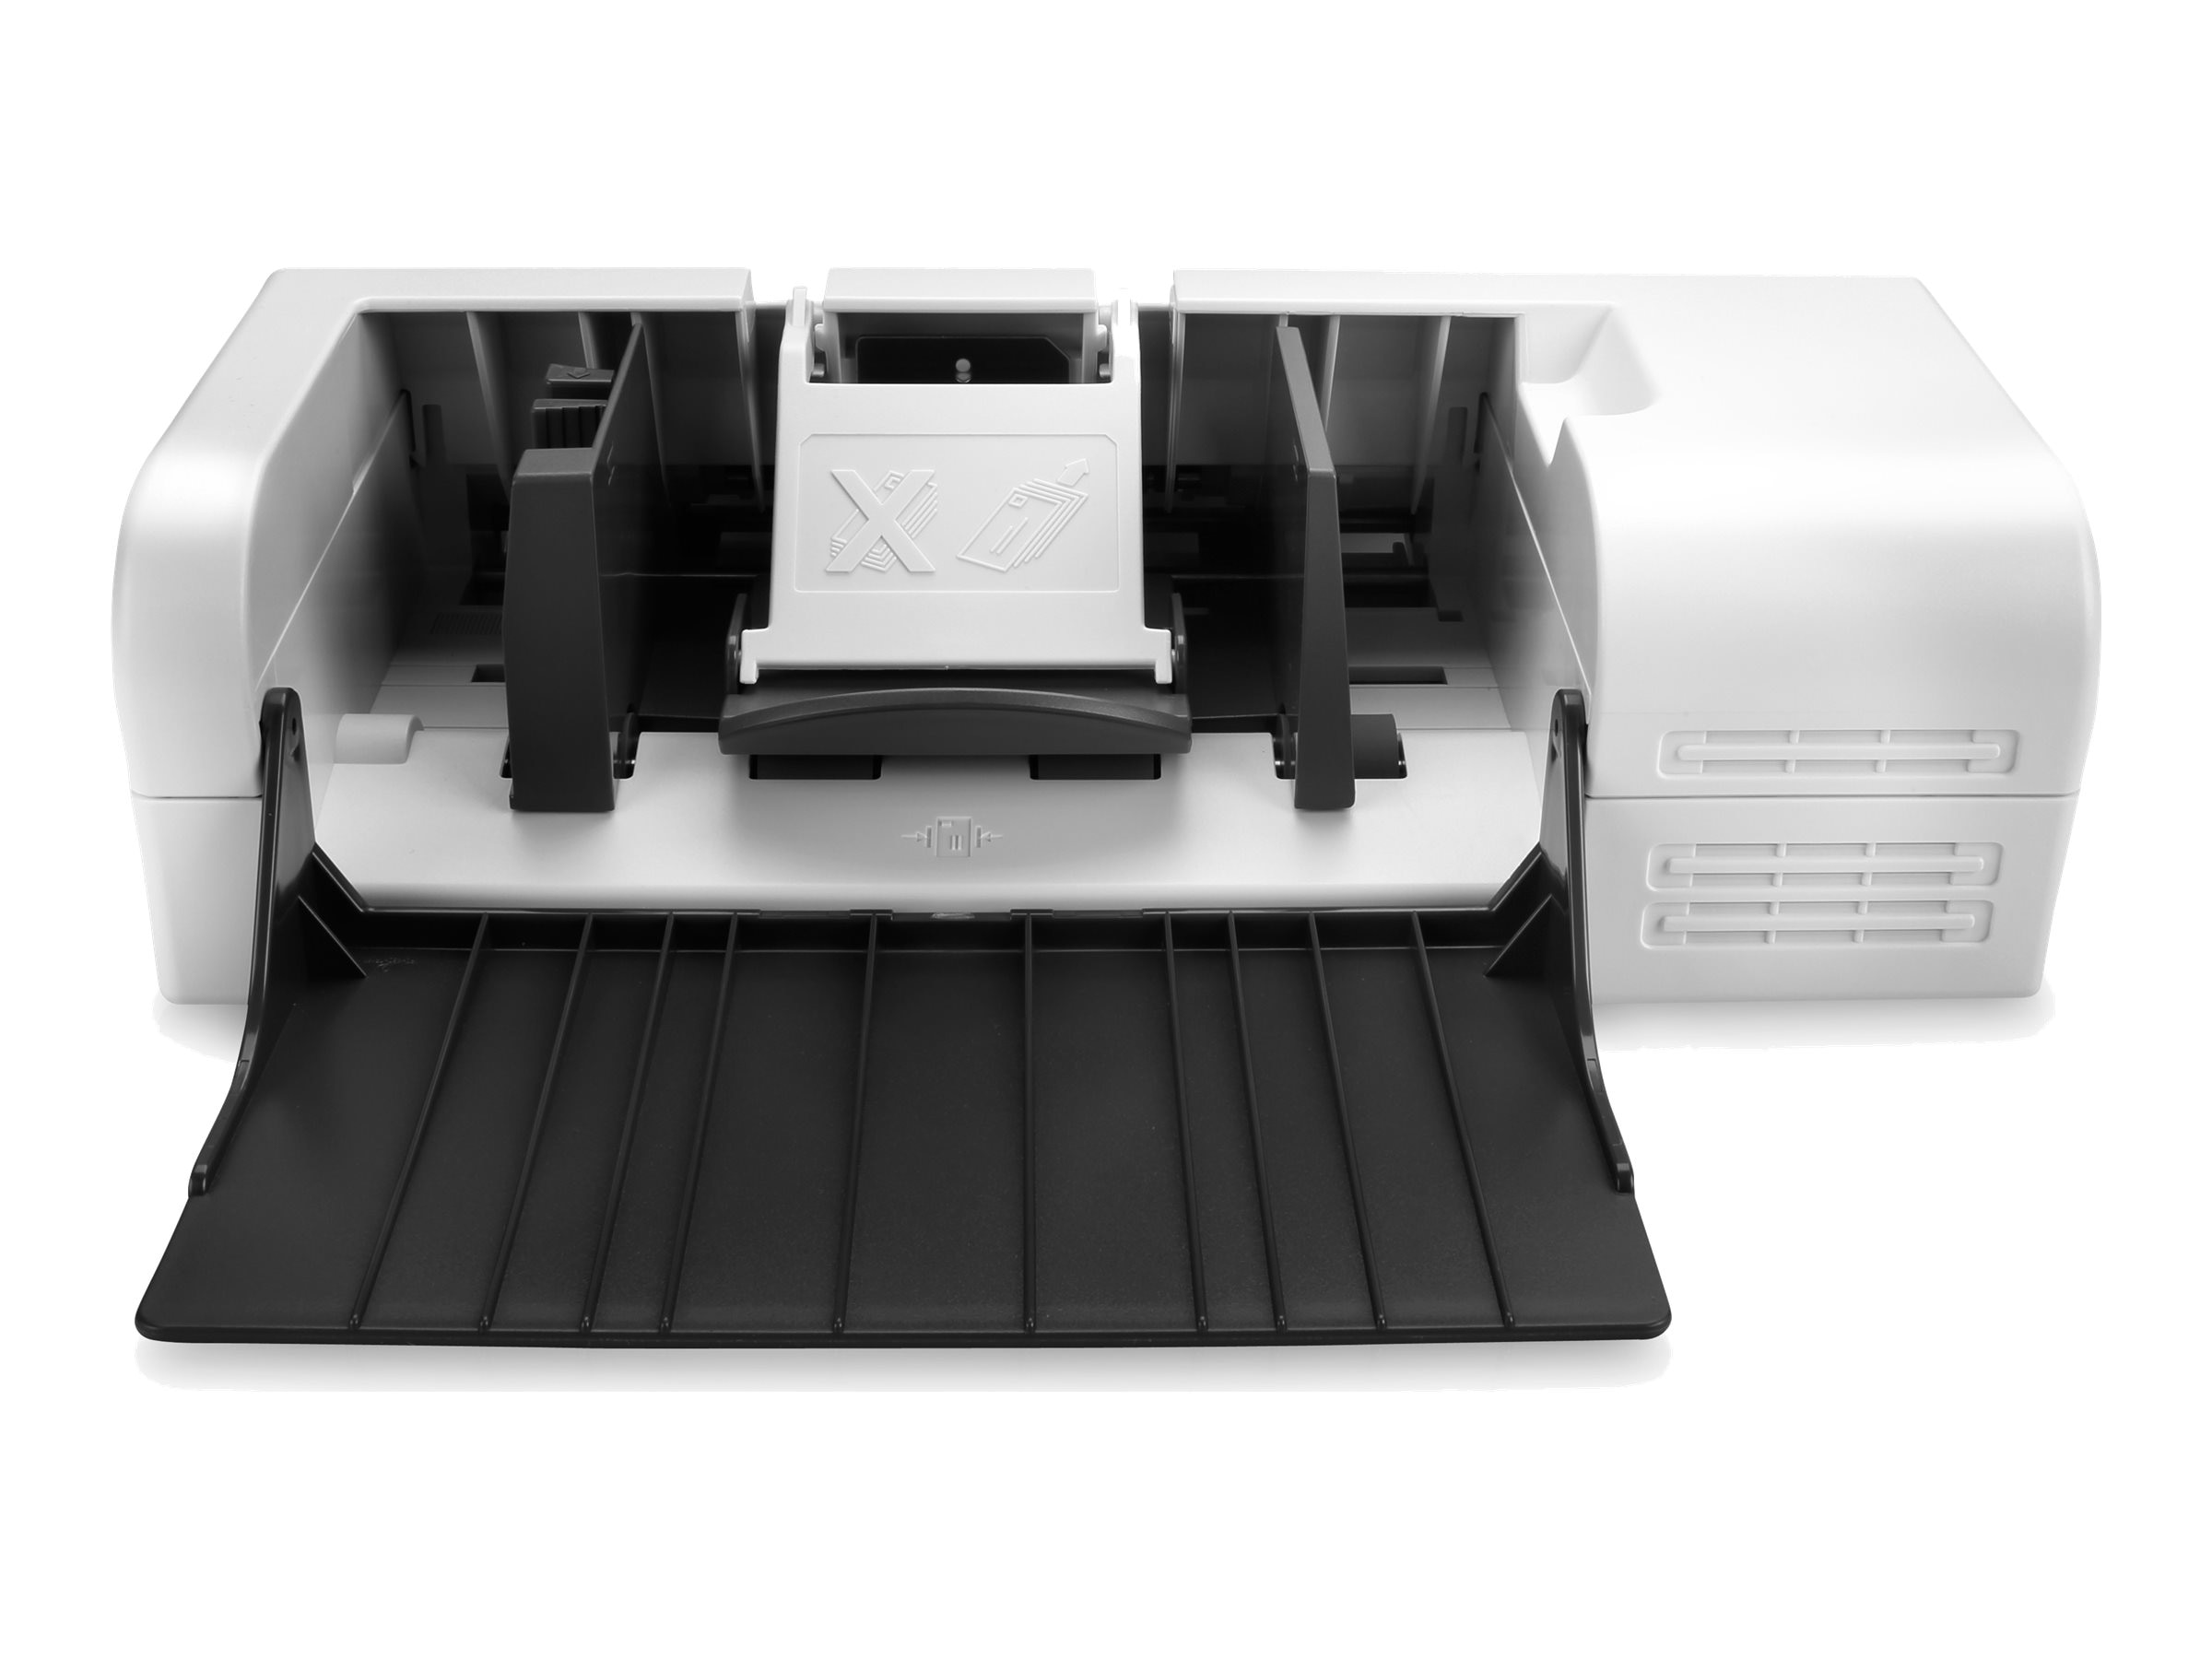 HP LaserJet 75-Sheet Envelope Feeder for HP LaserJet Enterprise M604, M605 & M606 Series